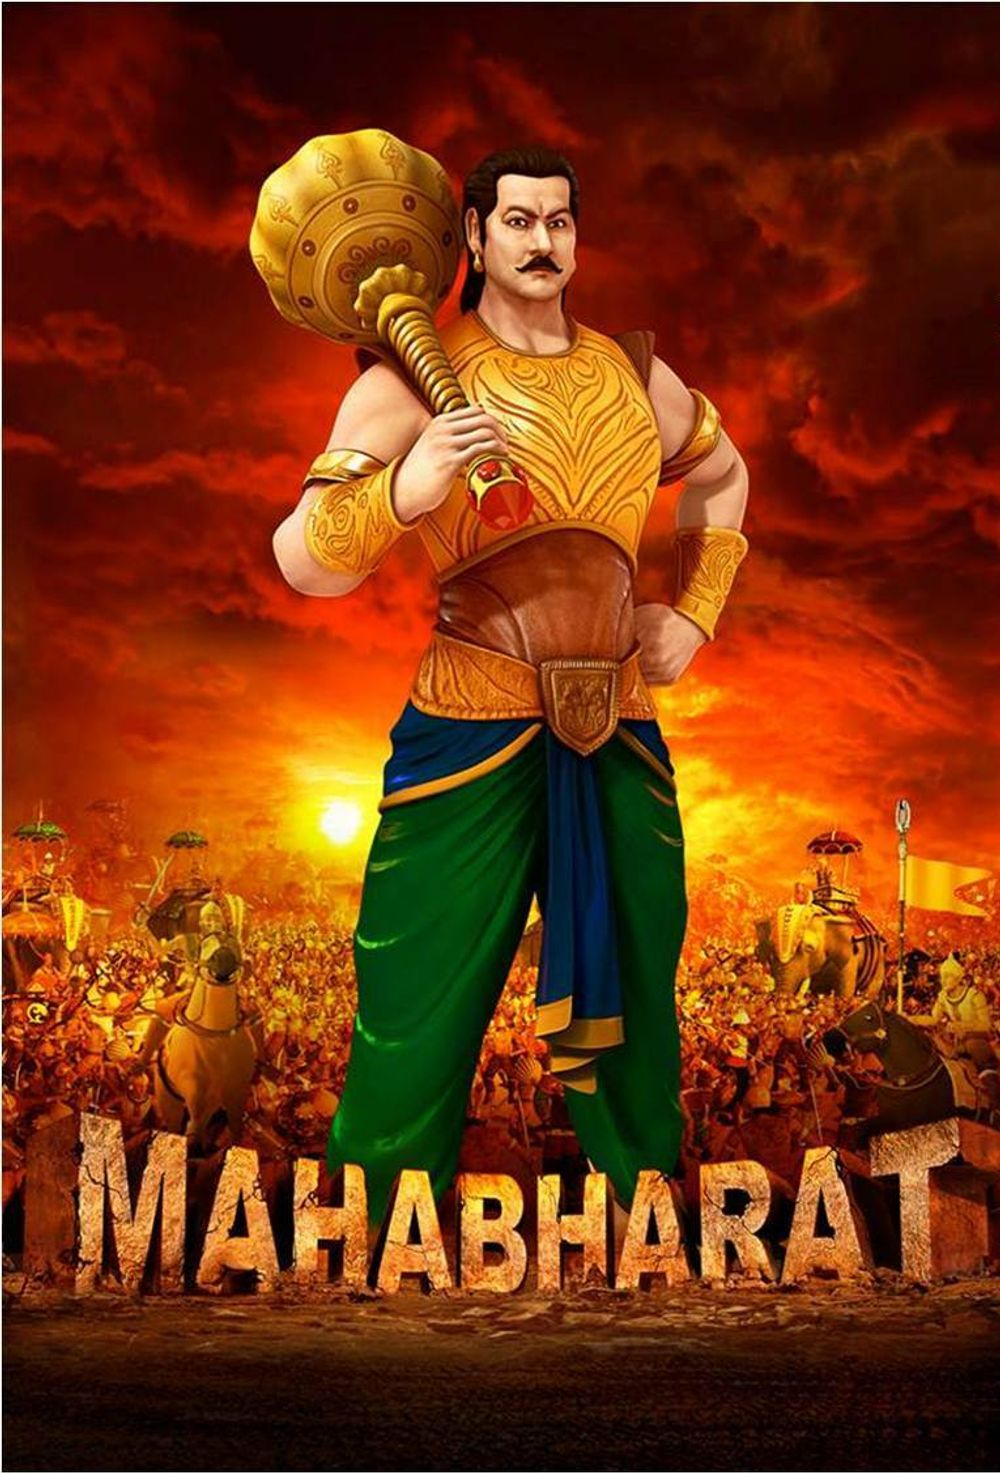 Mahabharat Movie Review